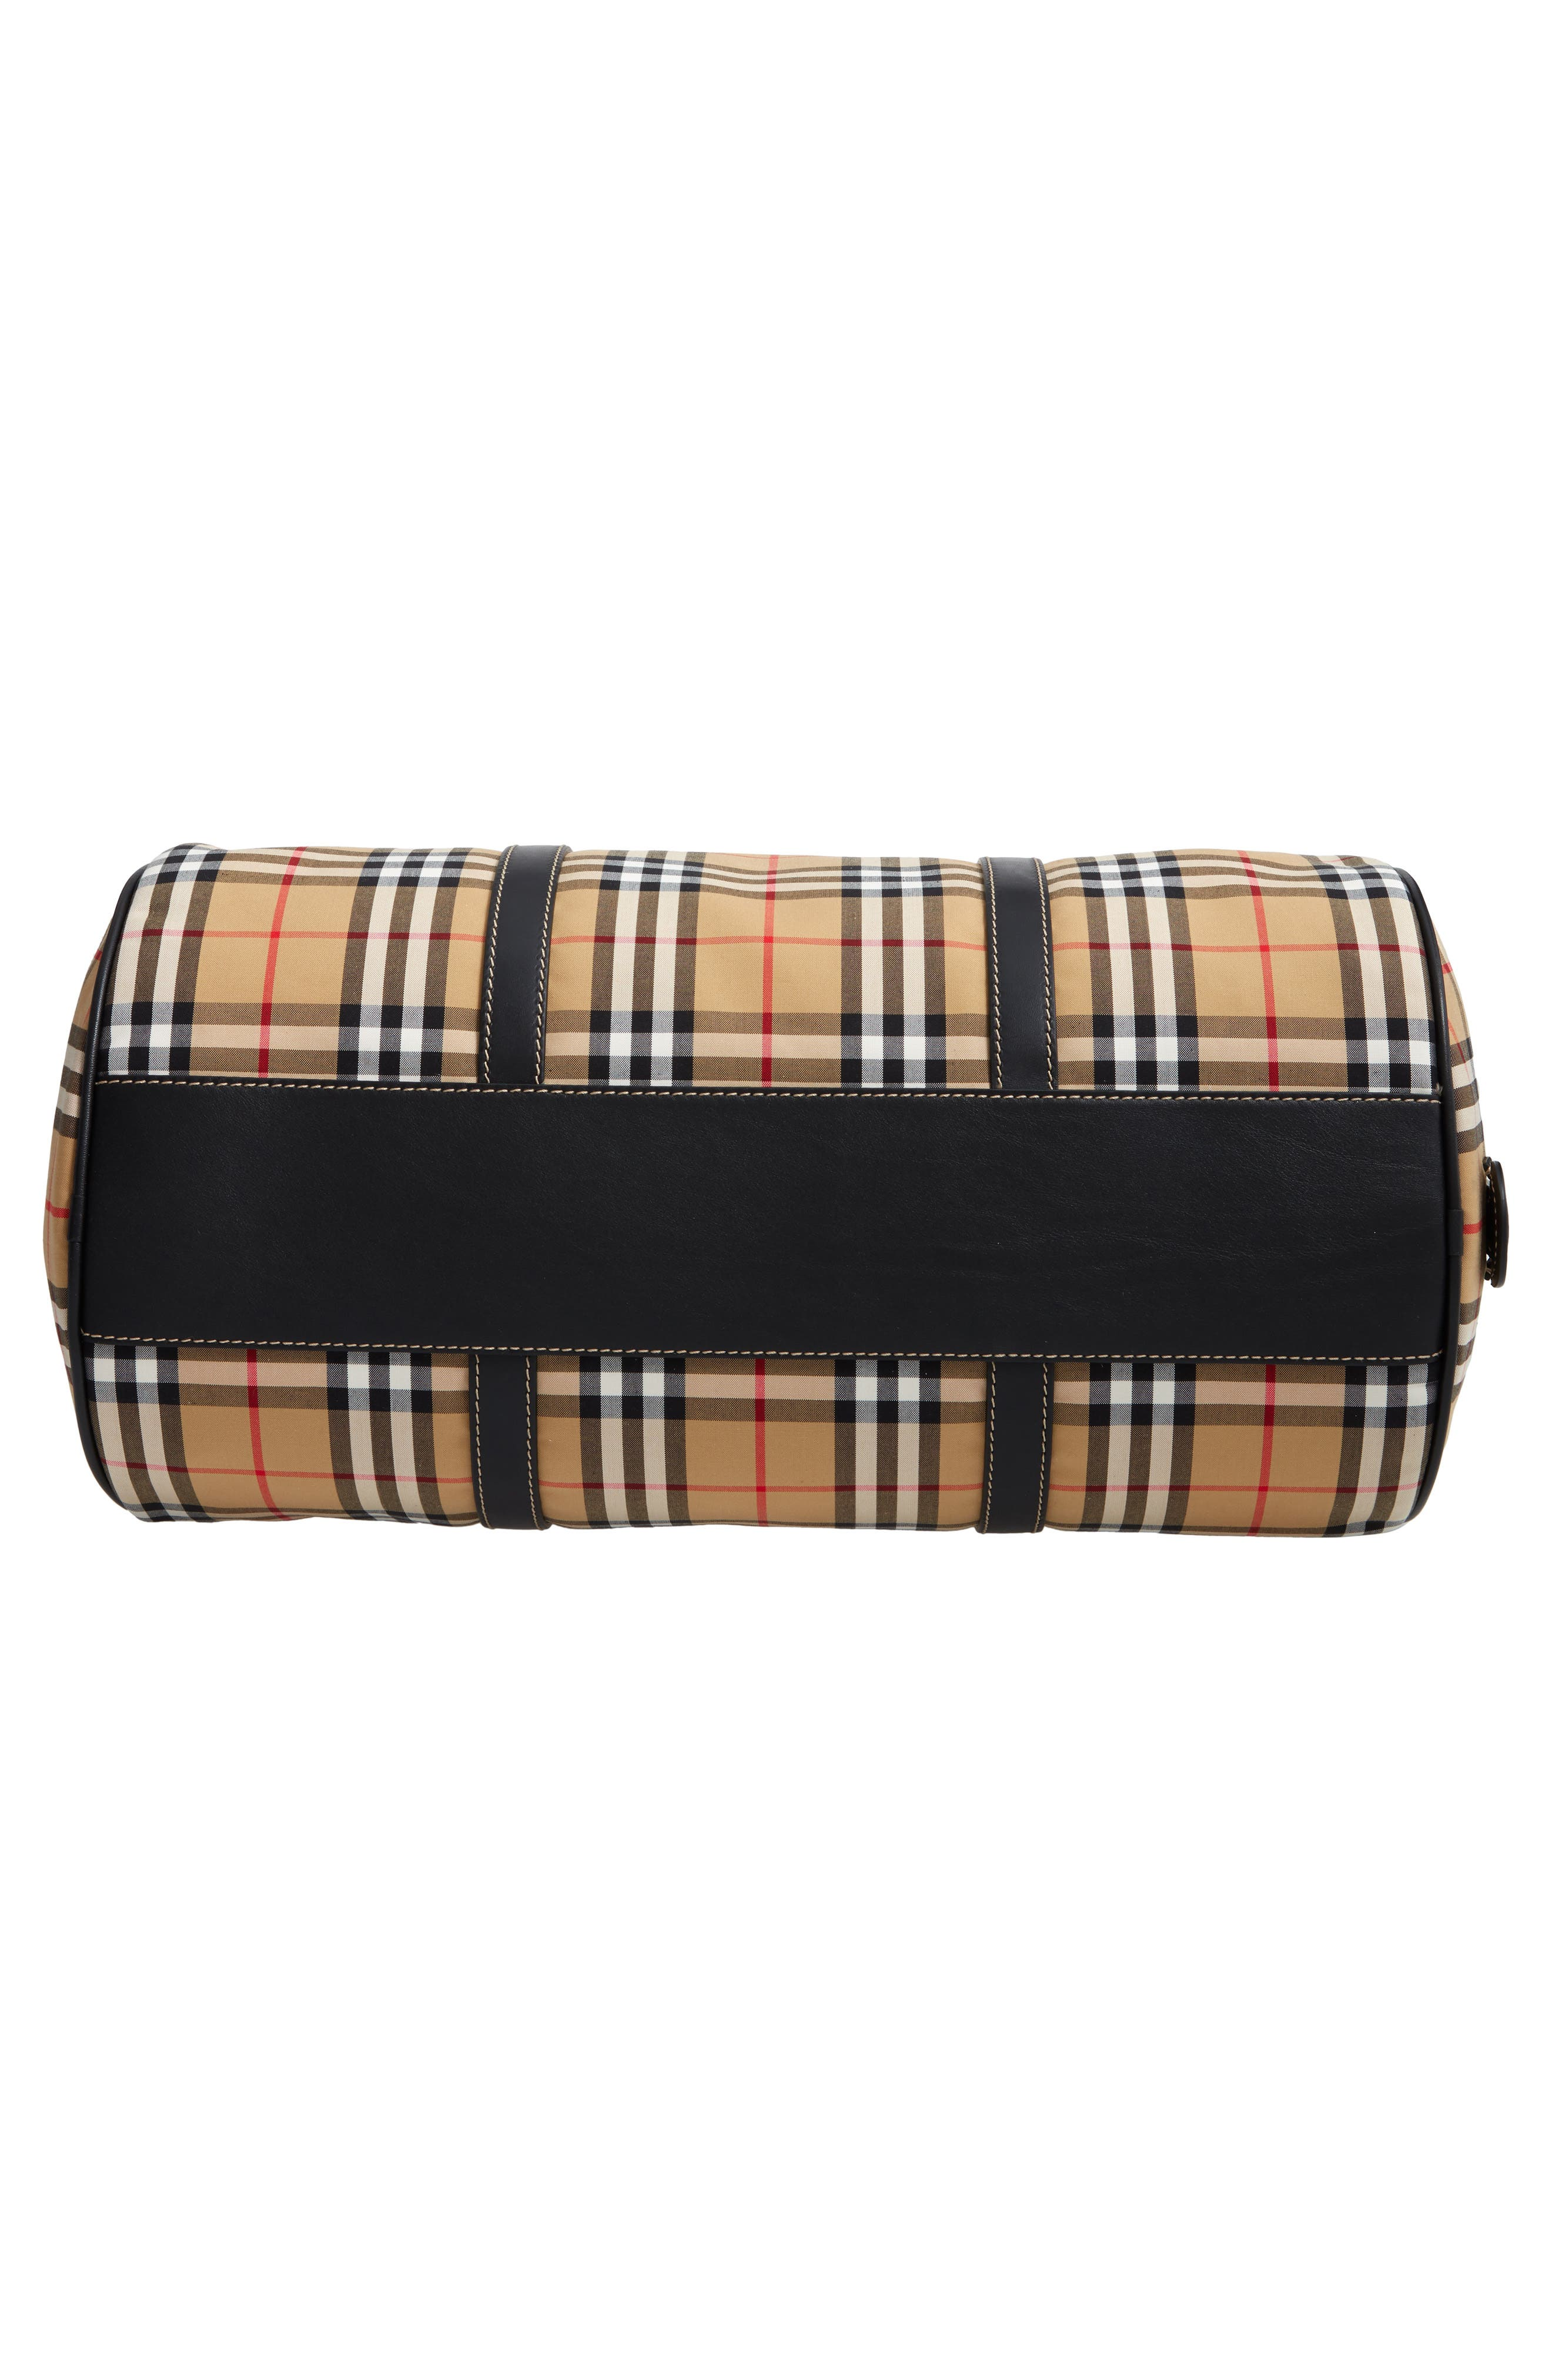 Medium Kennedy Vintage Check Duffel Bag,                             Alternate thumbnail 6, color,                             CANVAS BLUE